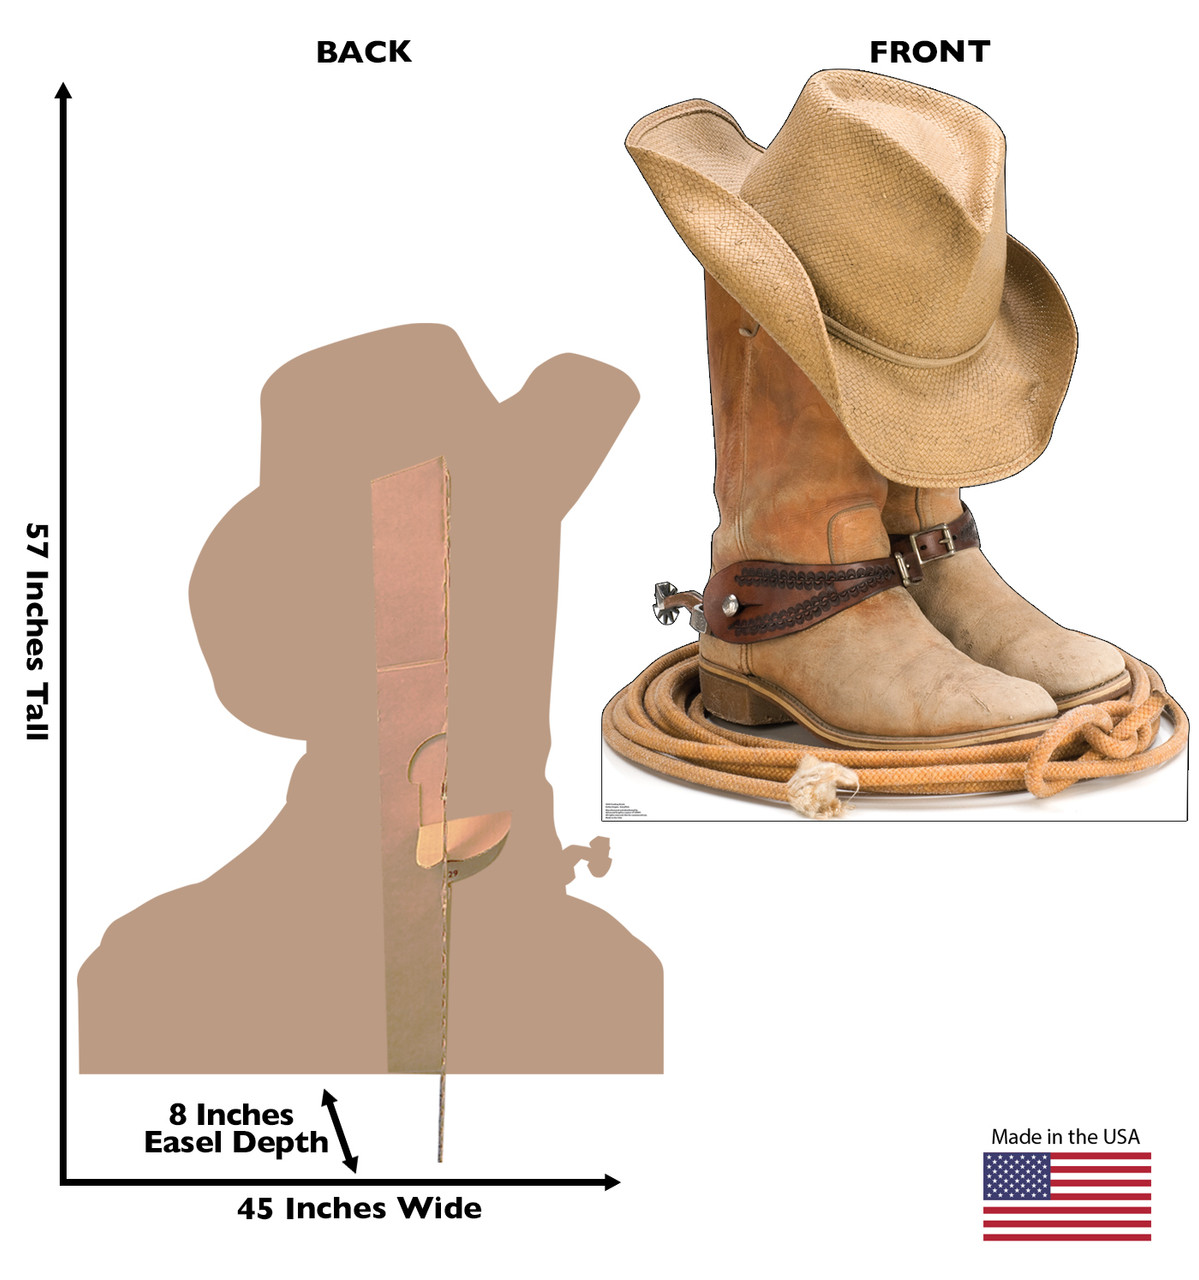 Life-size cardboard standee of Cowboy Boots Front and Back View